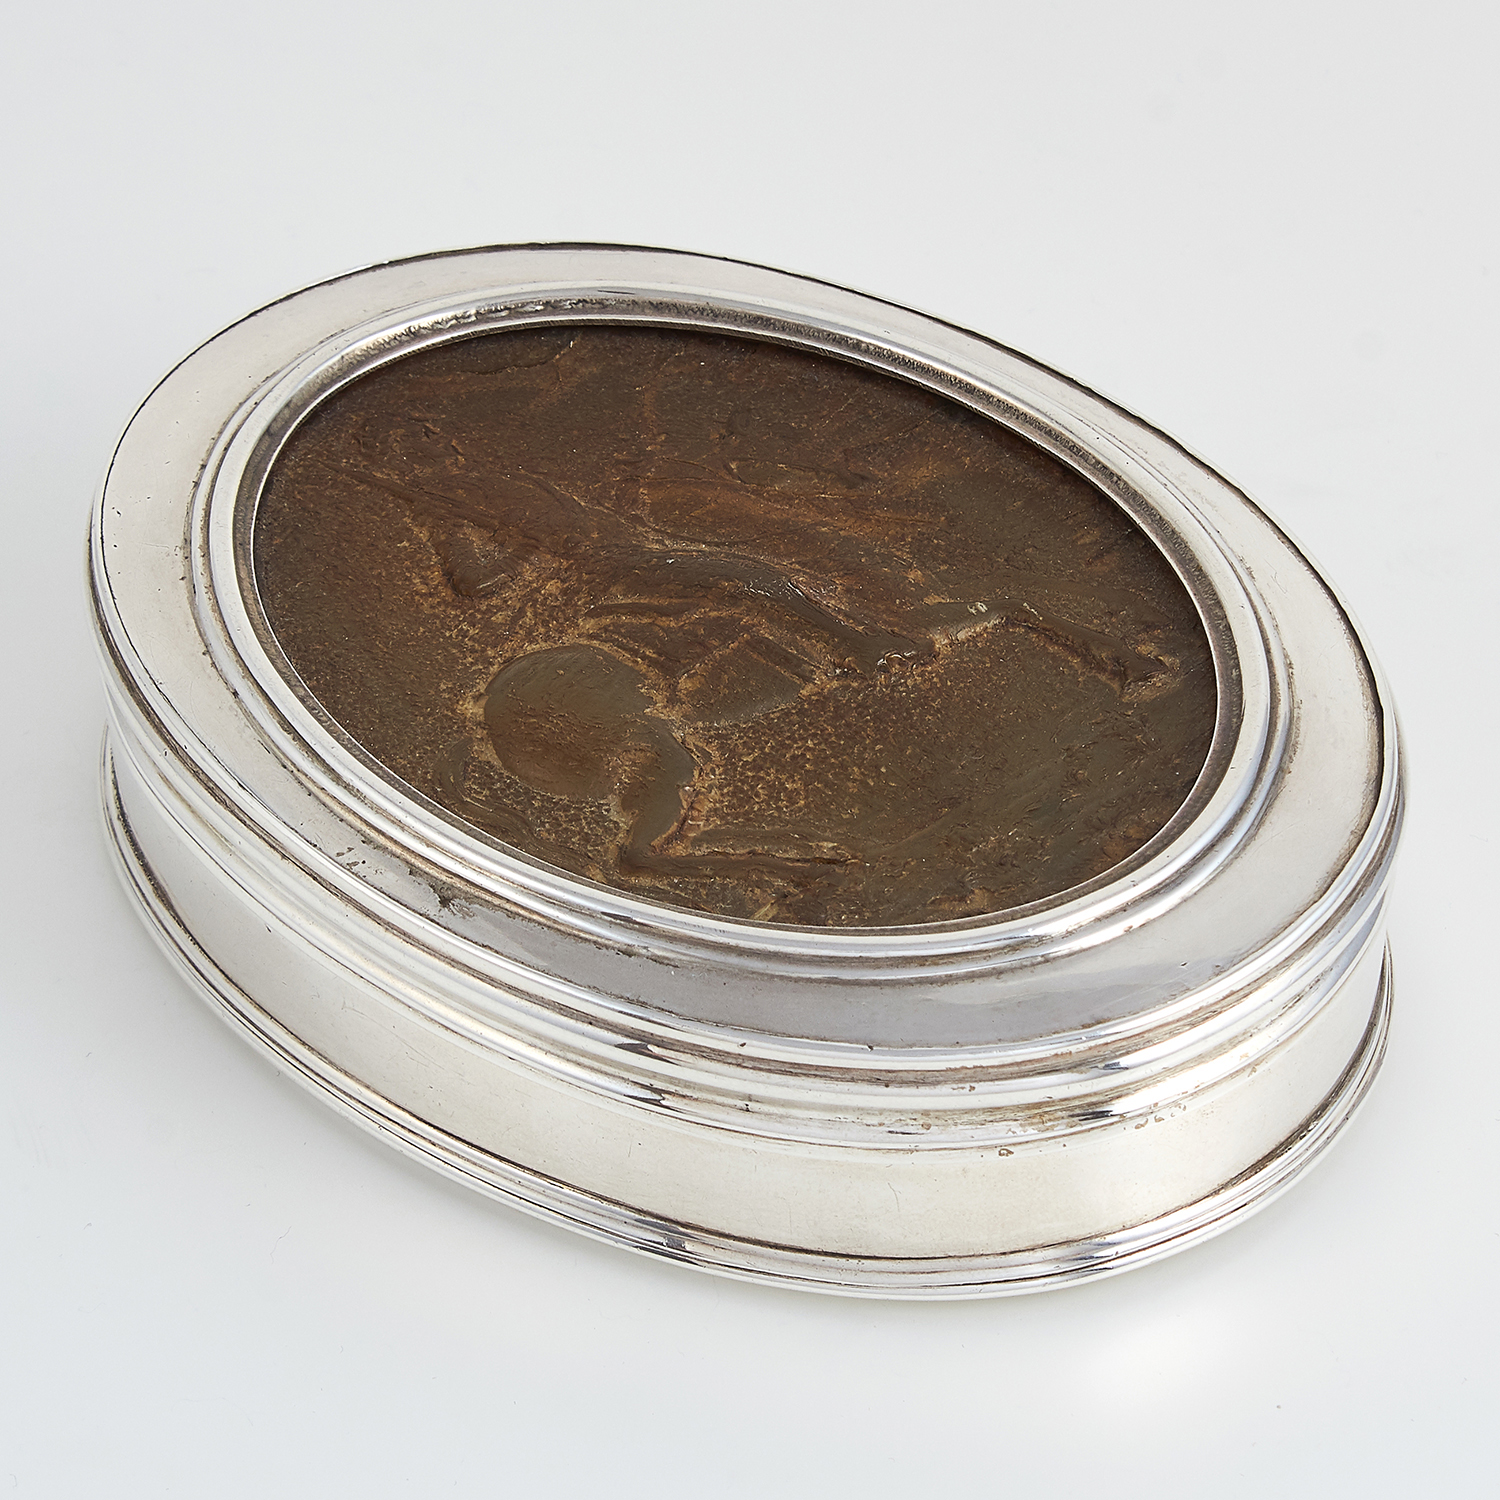 ANTIQUE SCOTTISH SILVER AND PRESSED HORN TOBACCO BOX, MAKER'S MARK I.S, CIRCA 1800 of oval form, the